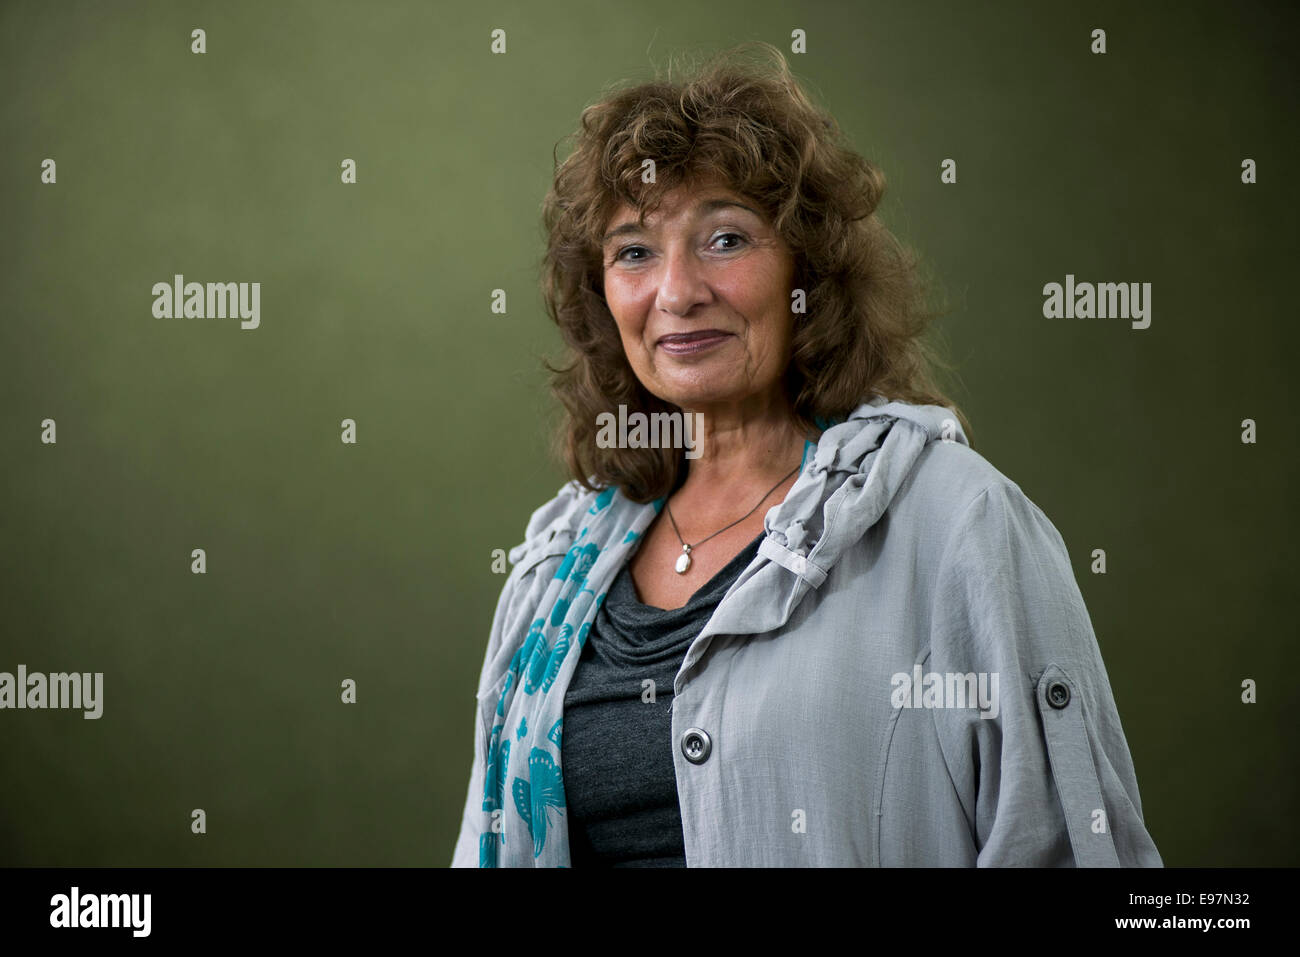 British writer, novelist, and campaigner for free expression Lisa Appignanesi at the Edinburgh International Book - Stock Image